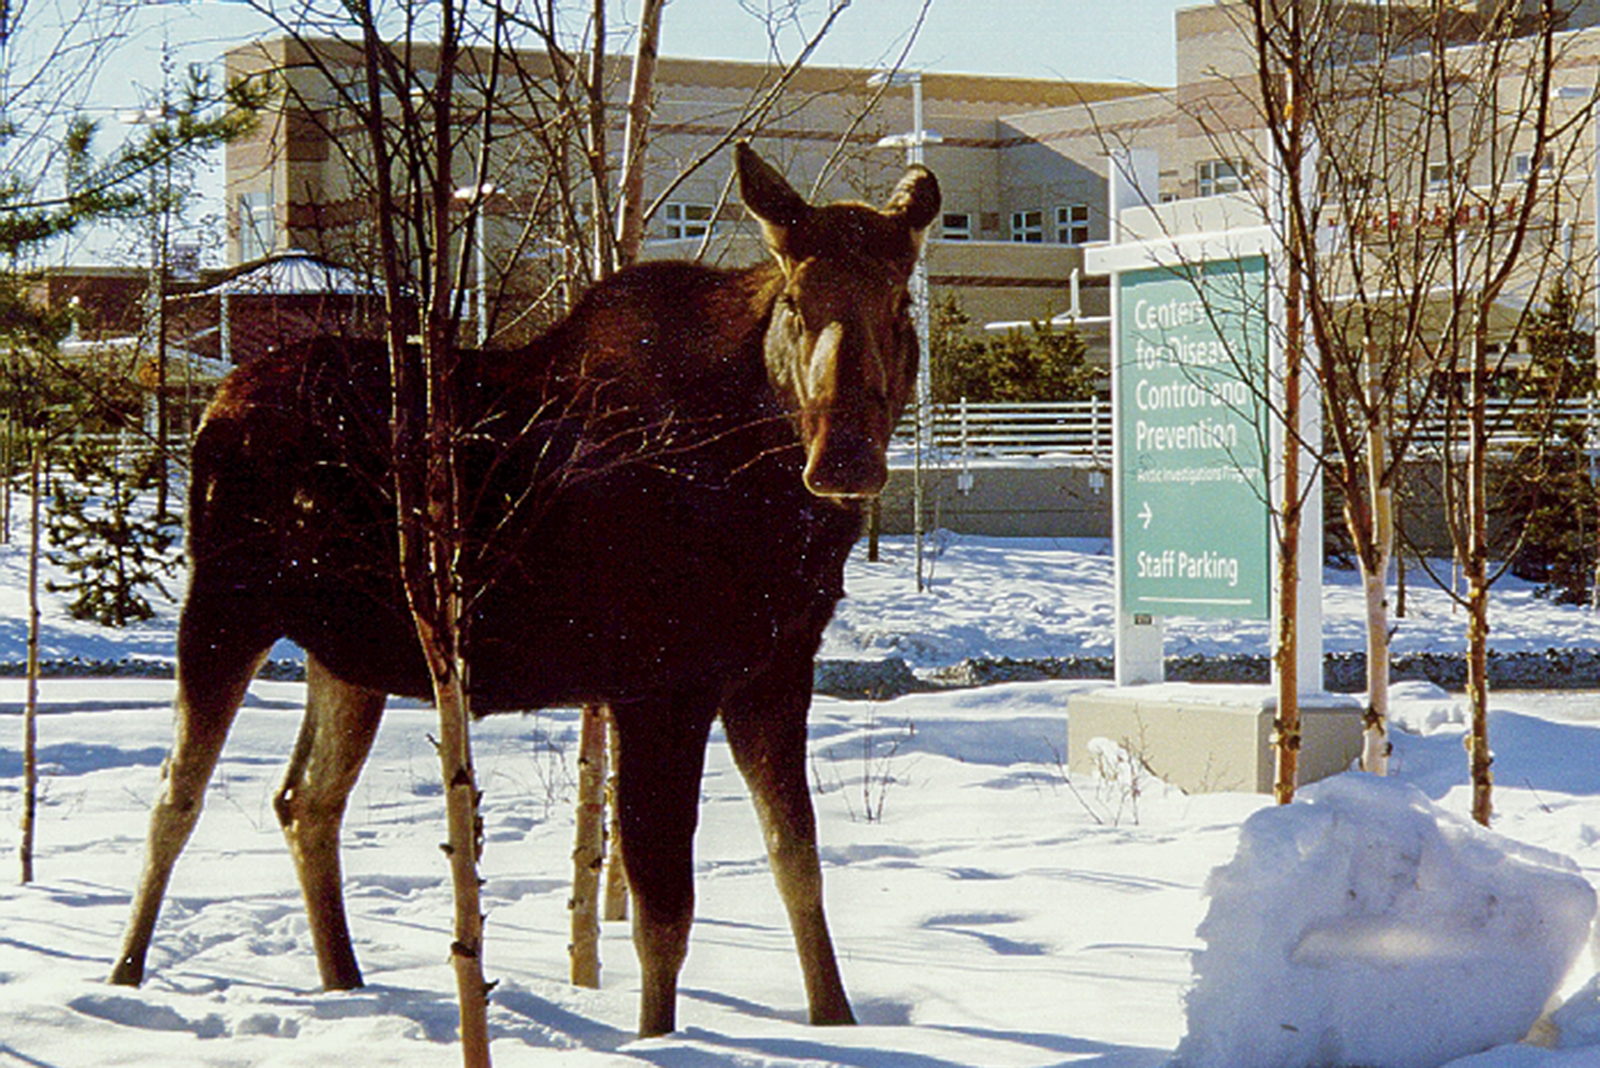 A moose stands in front of the CDC building in Anchorage